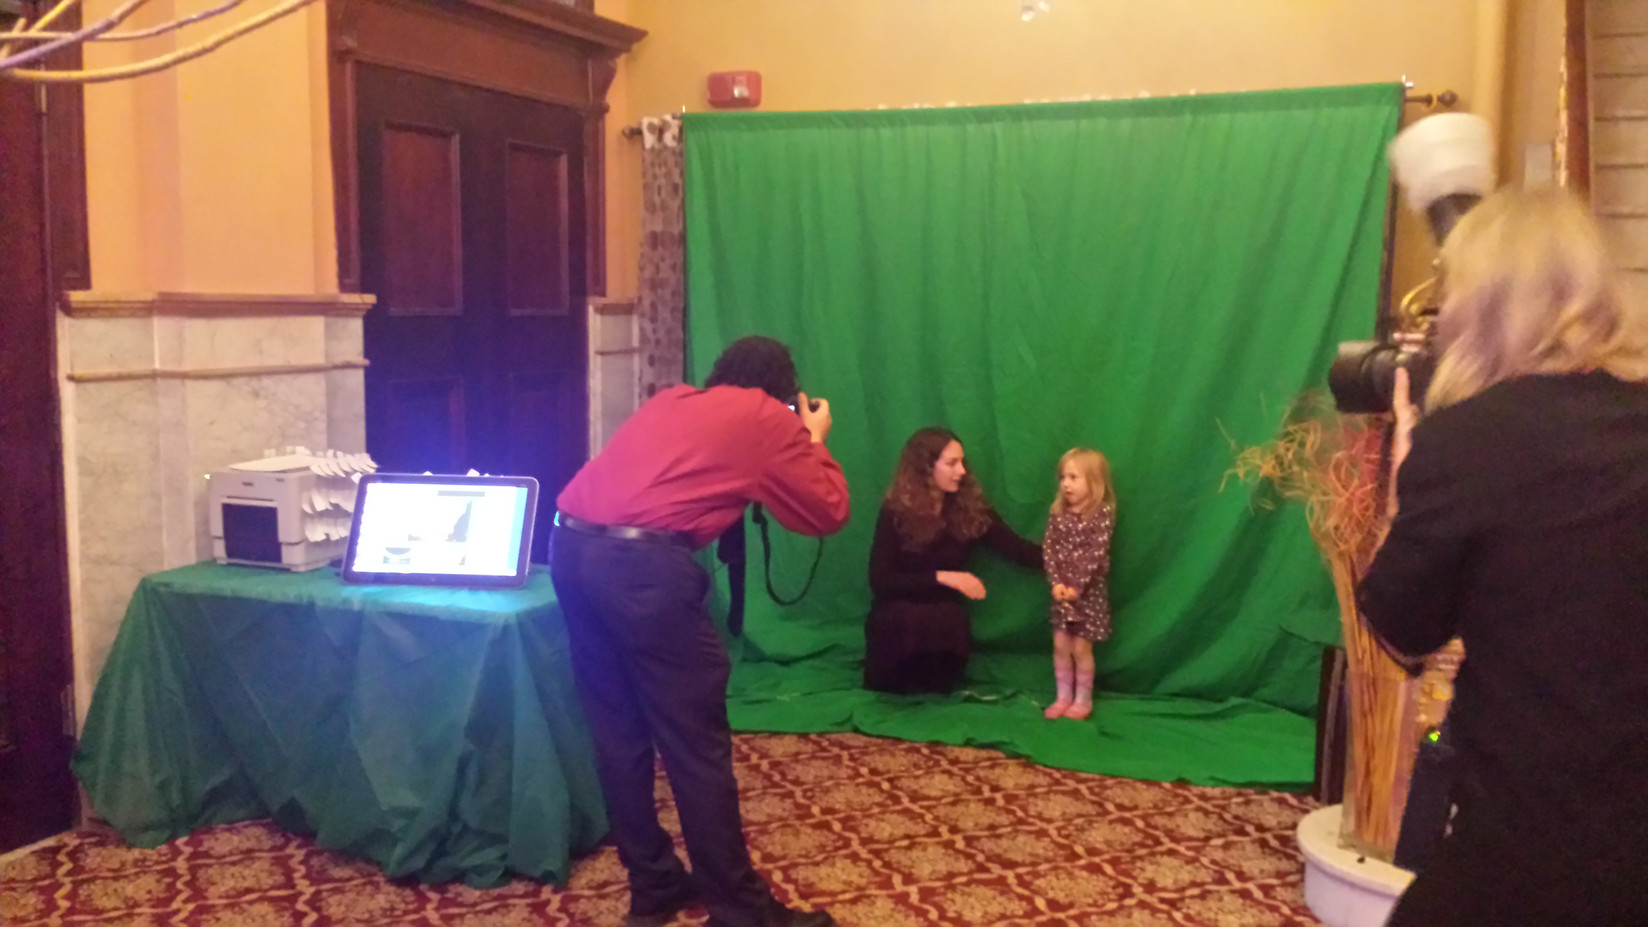 Graphic-Green-Screen-Photo-Booth.jpg